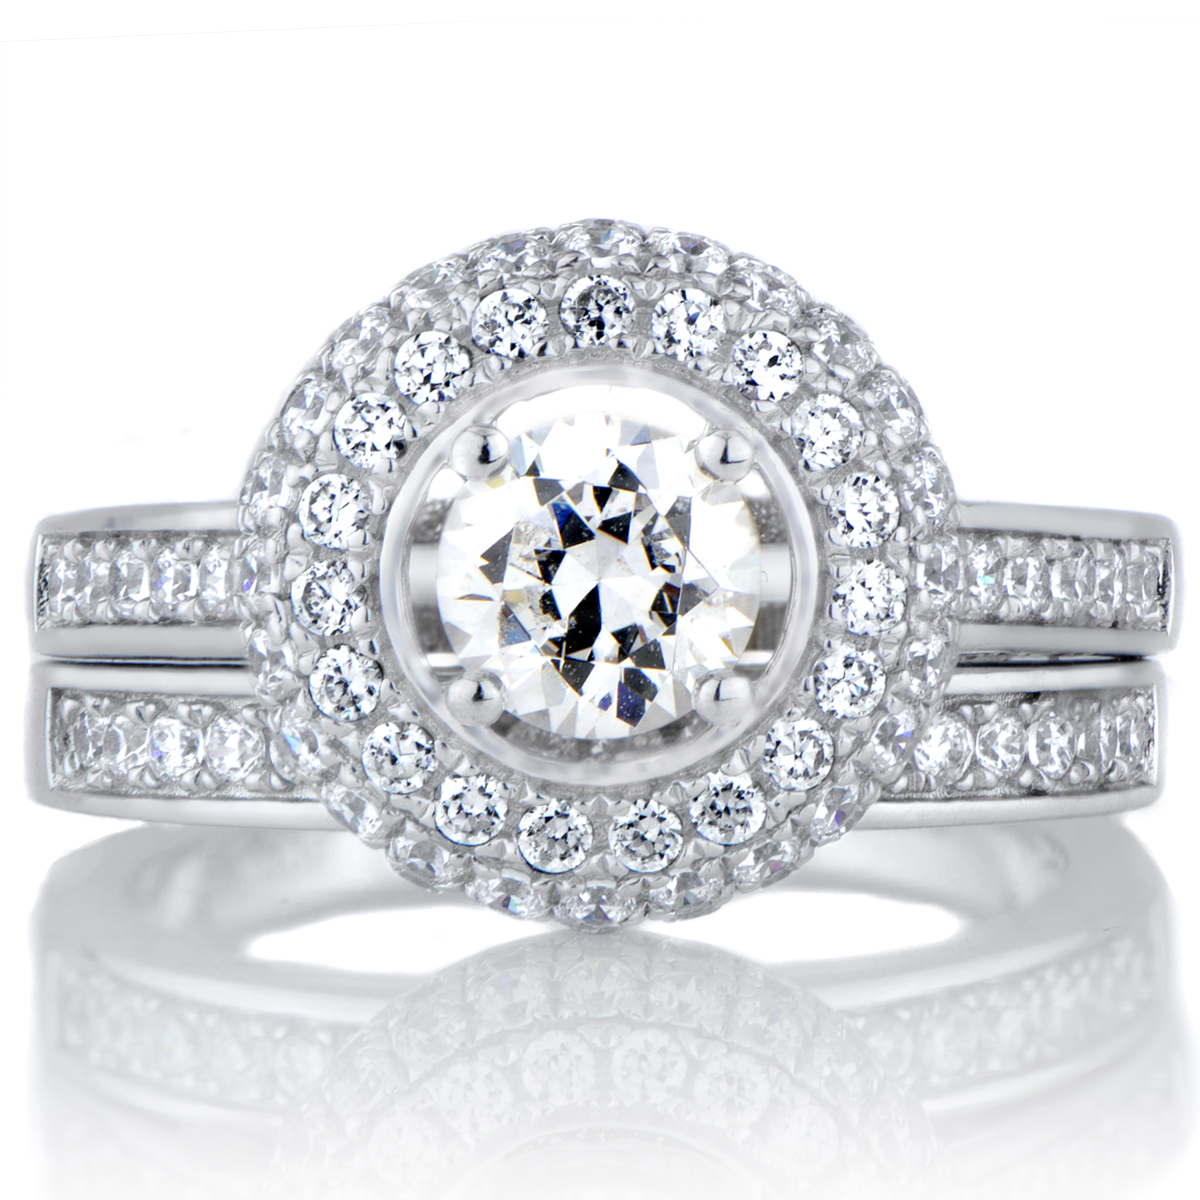 karisma's halo cubic zirconia wedding ring set